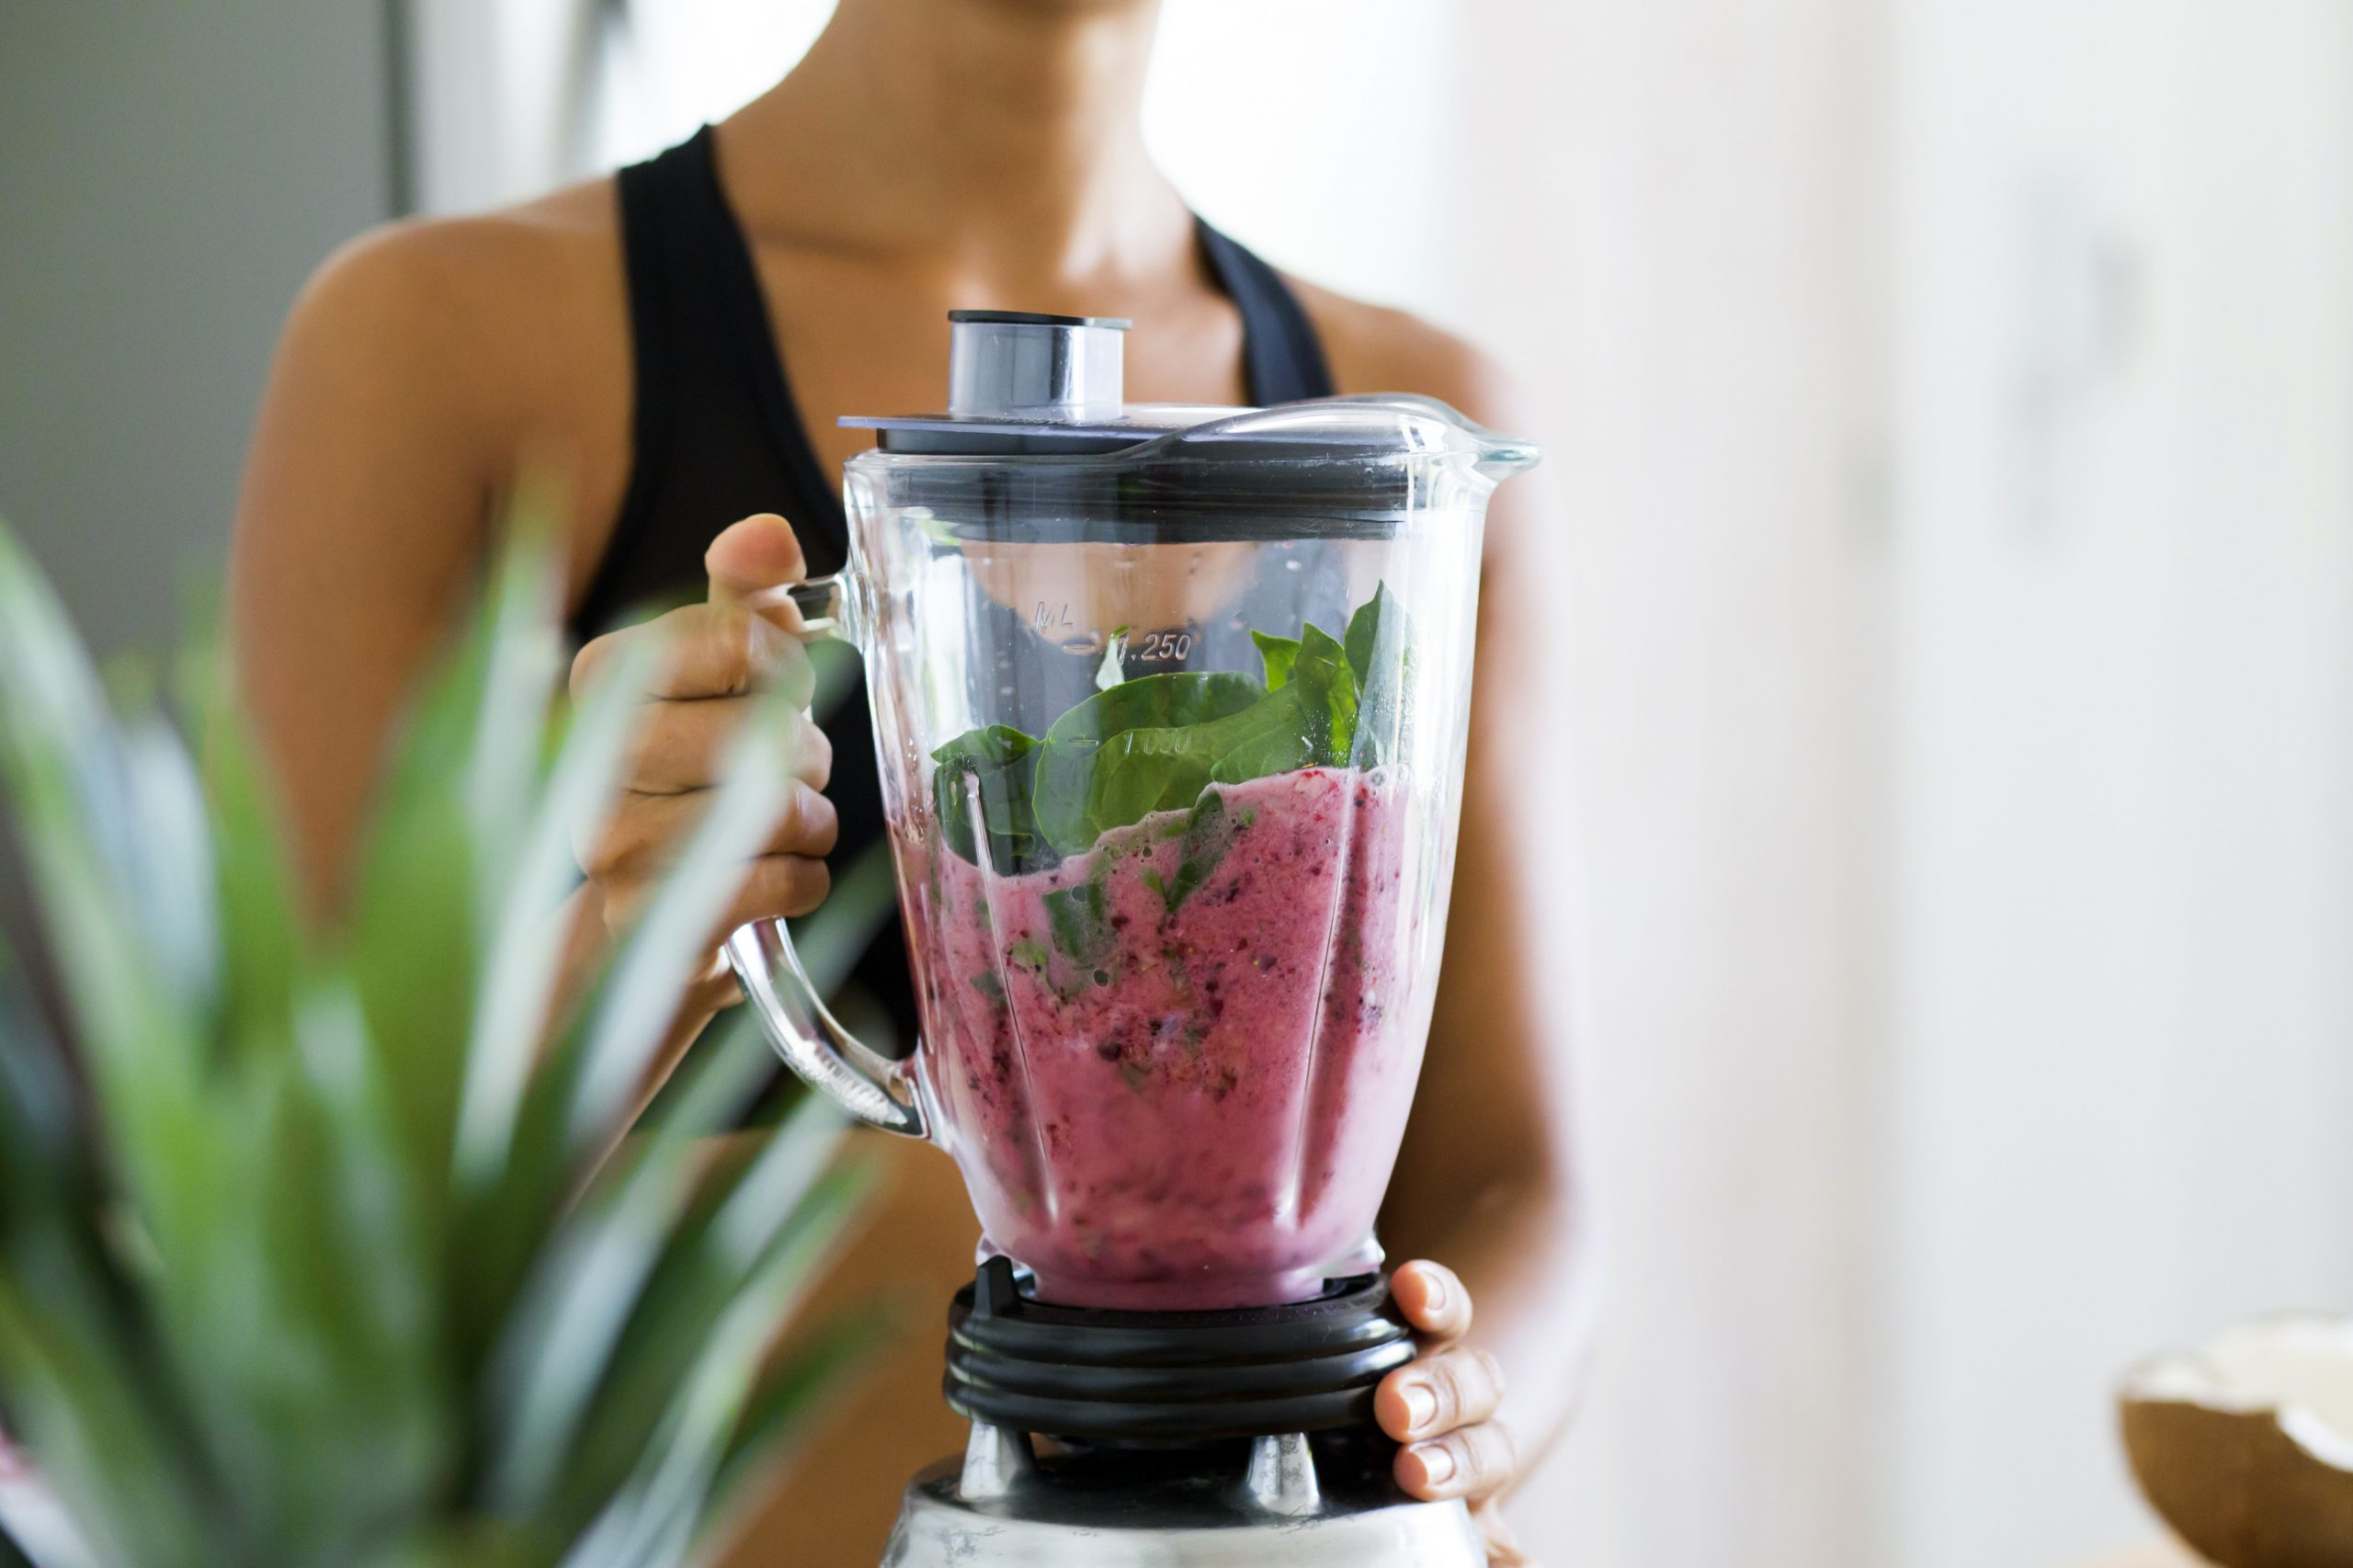 SpinBerry Smoothie